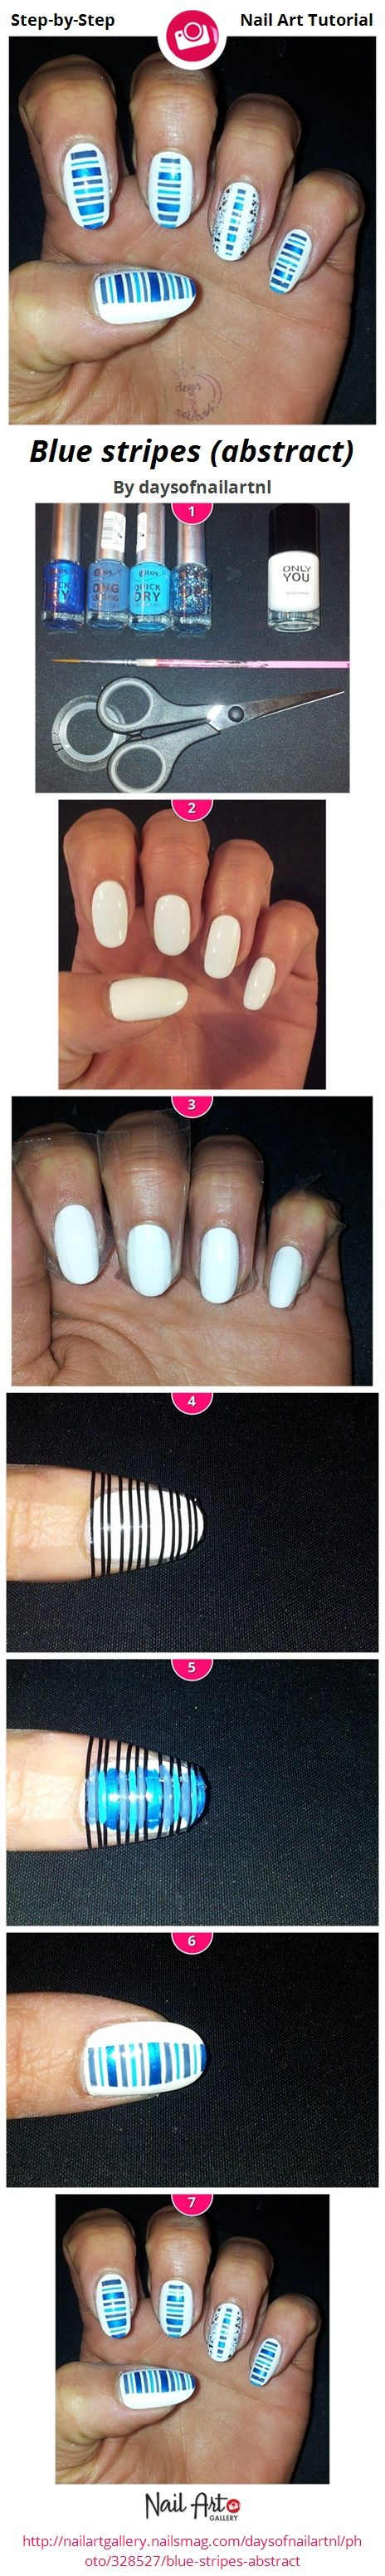 334 best Nail Art How-To Tutorials images on Pinterest | French ...